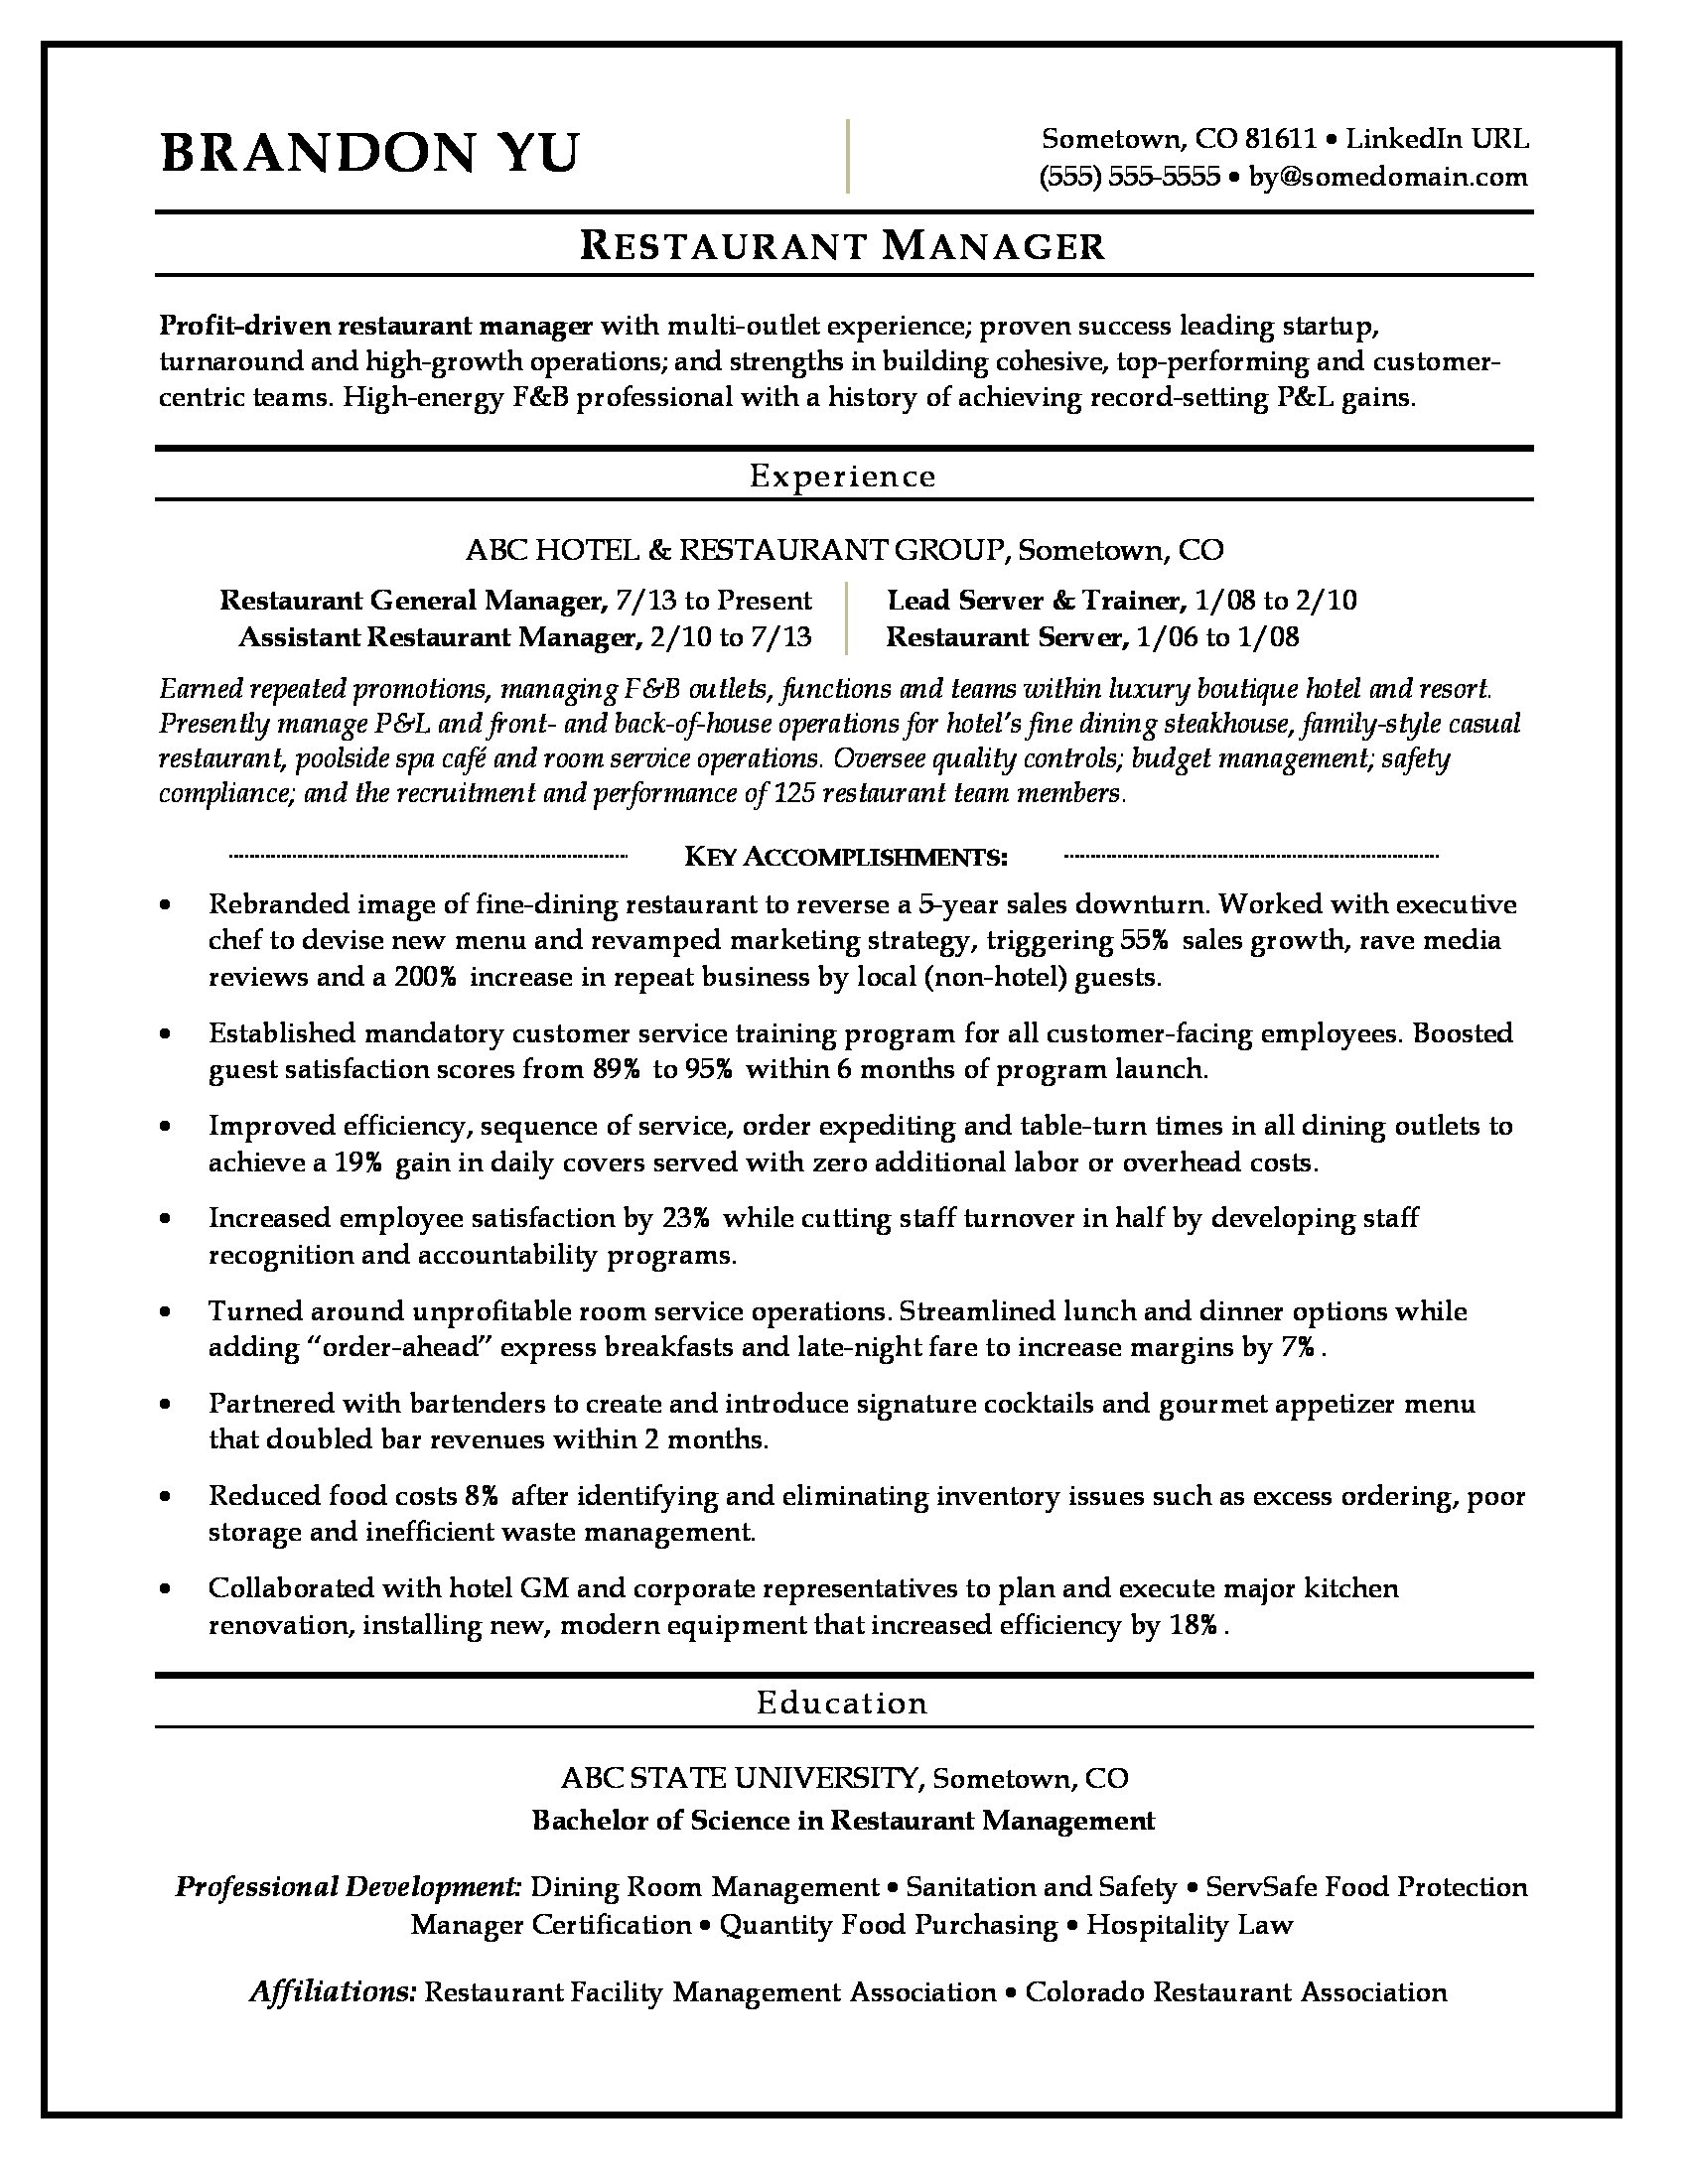 Accomplishments For Resume Interesting Restaurant Manager Resume Sample Monster